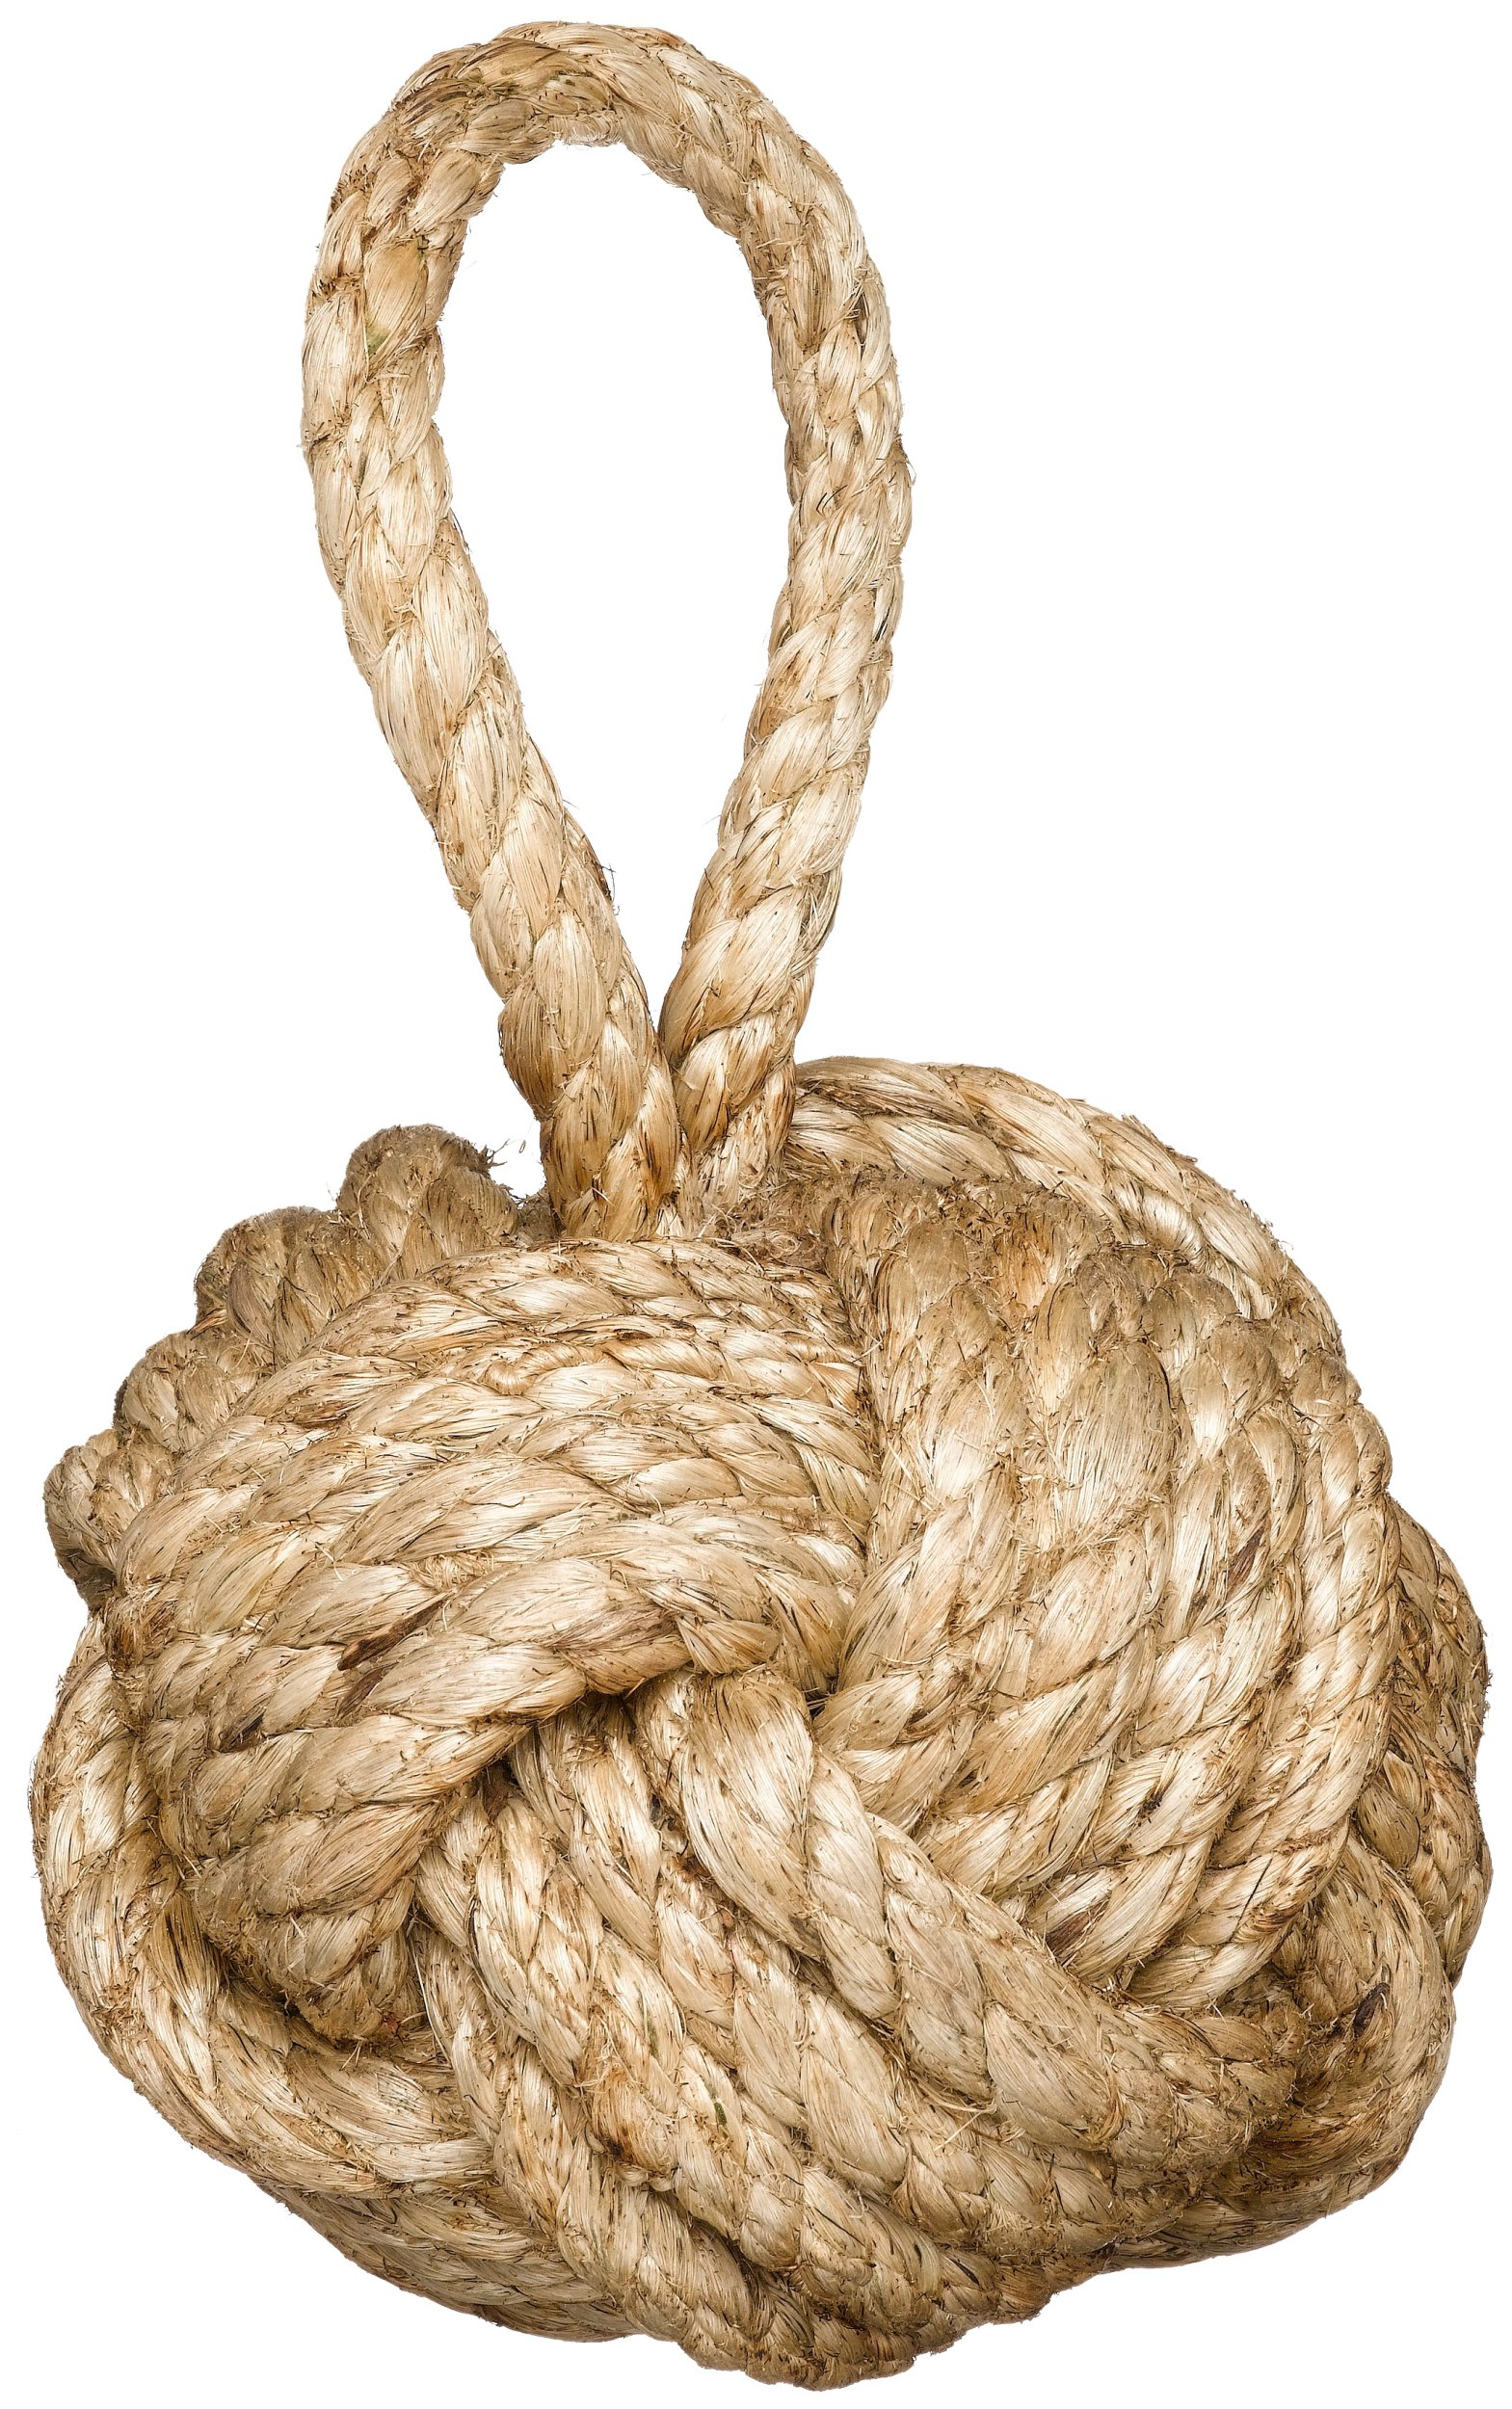 Two's Company Marseille Knot Door Stopper (3.3 lbs) - Jute